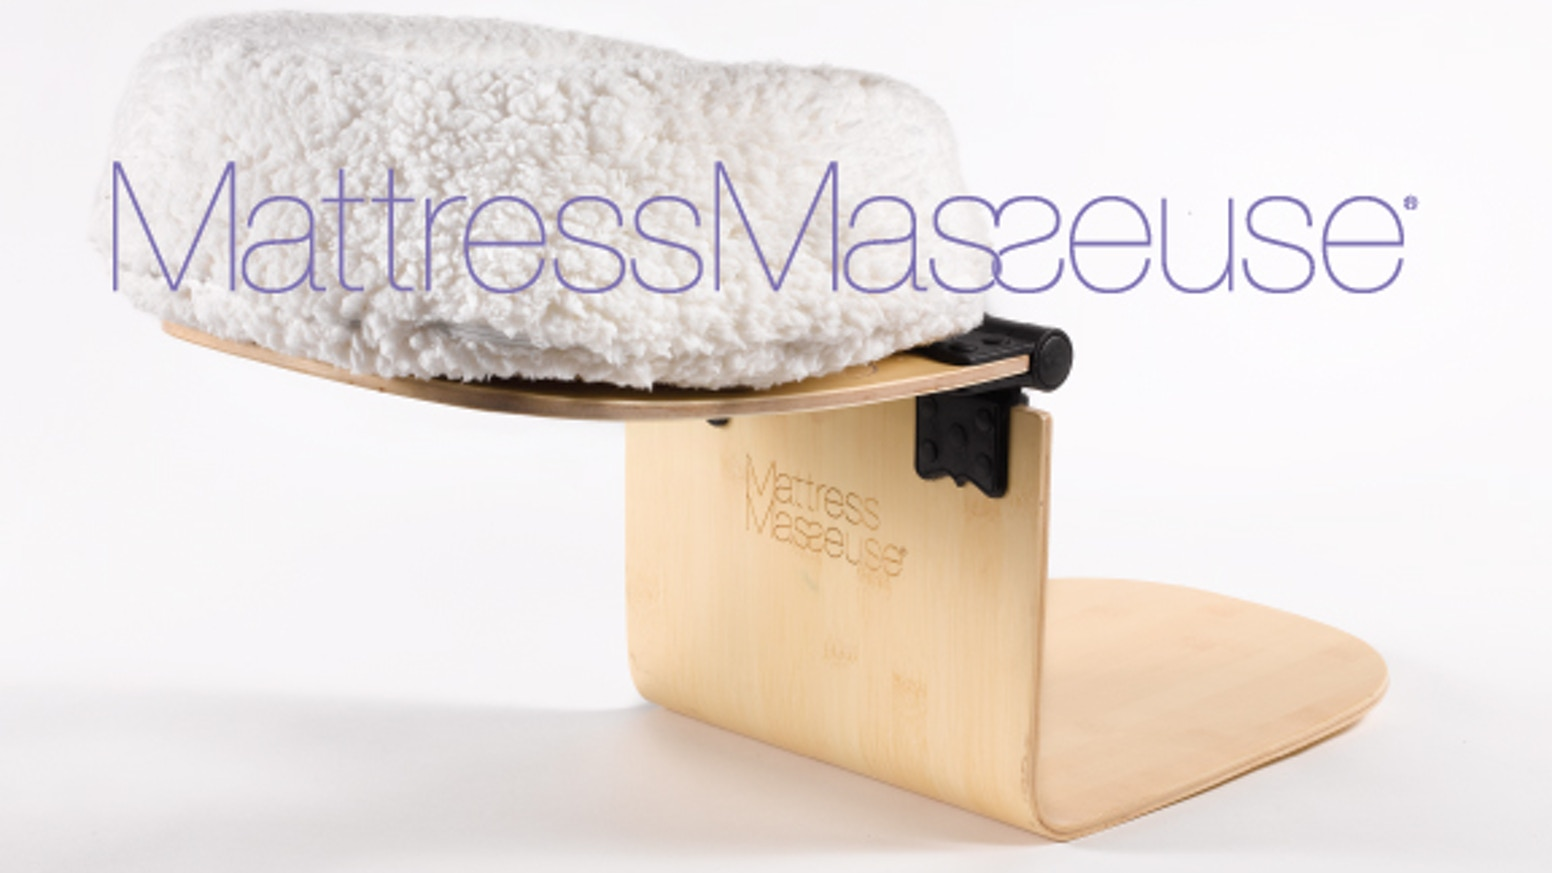 The massage table headrest for your bed.